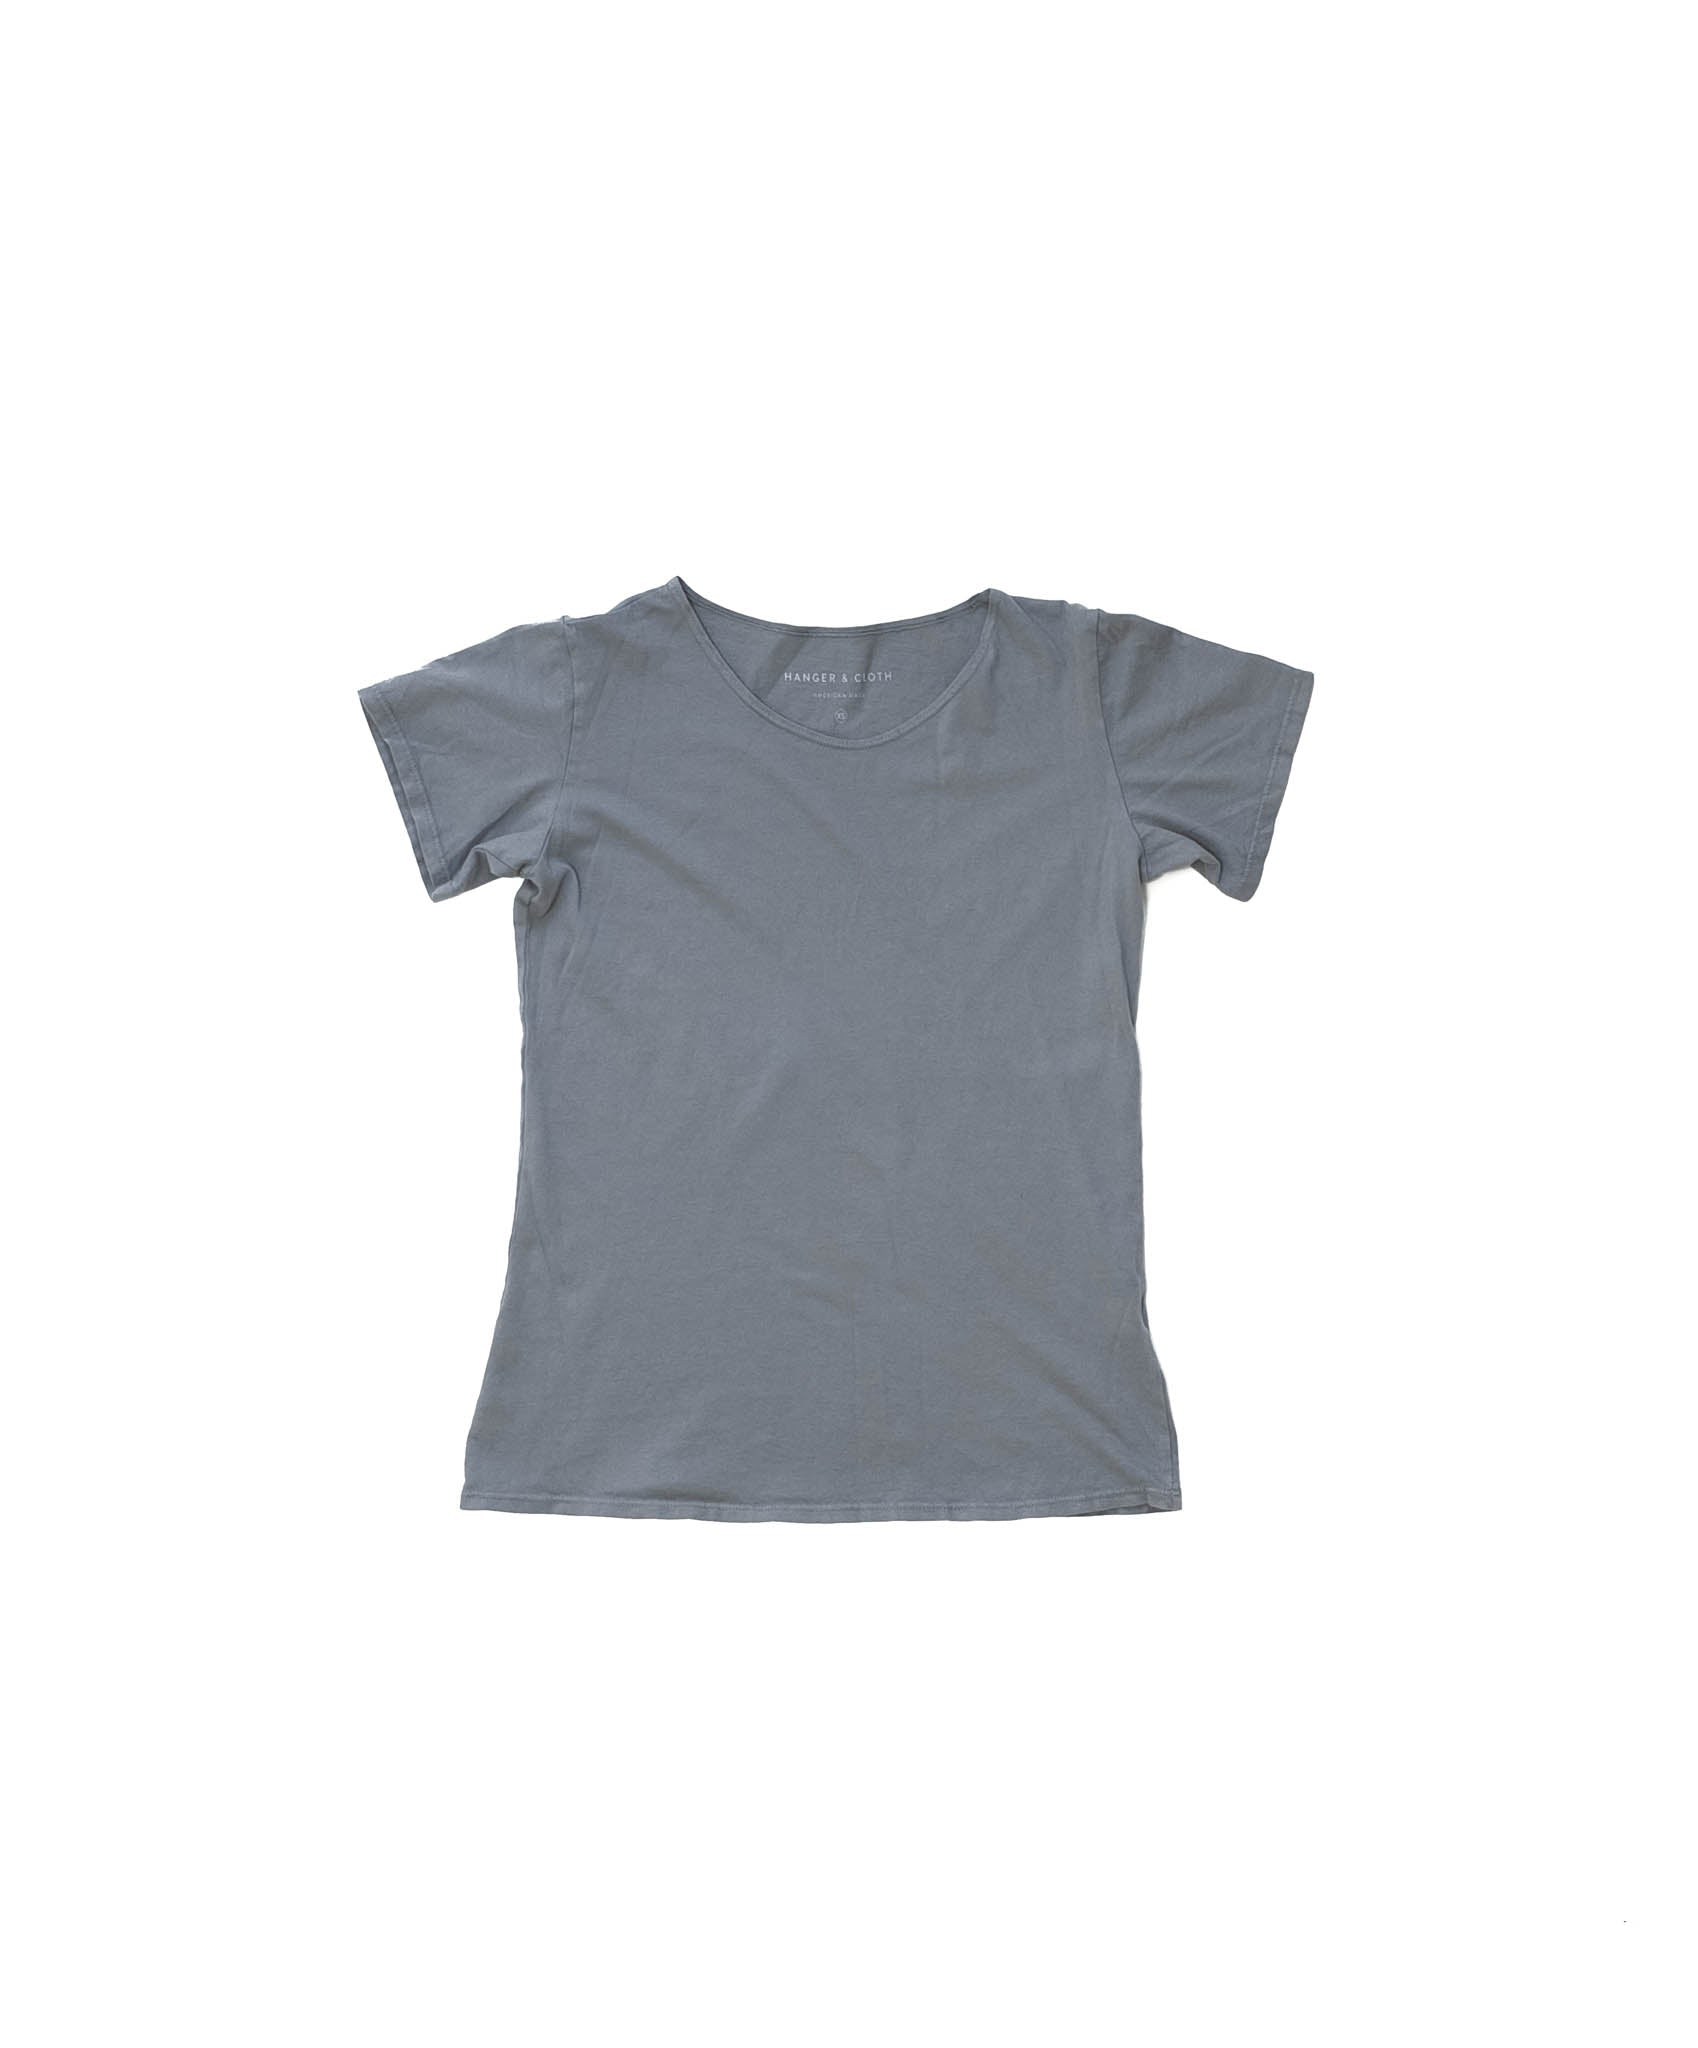 Soft Gray Organic Scoop Neck